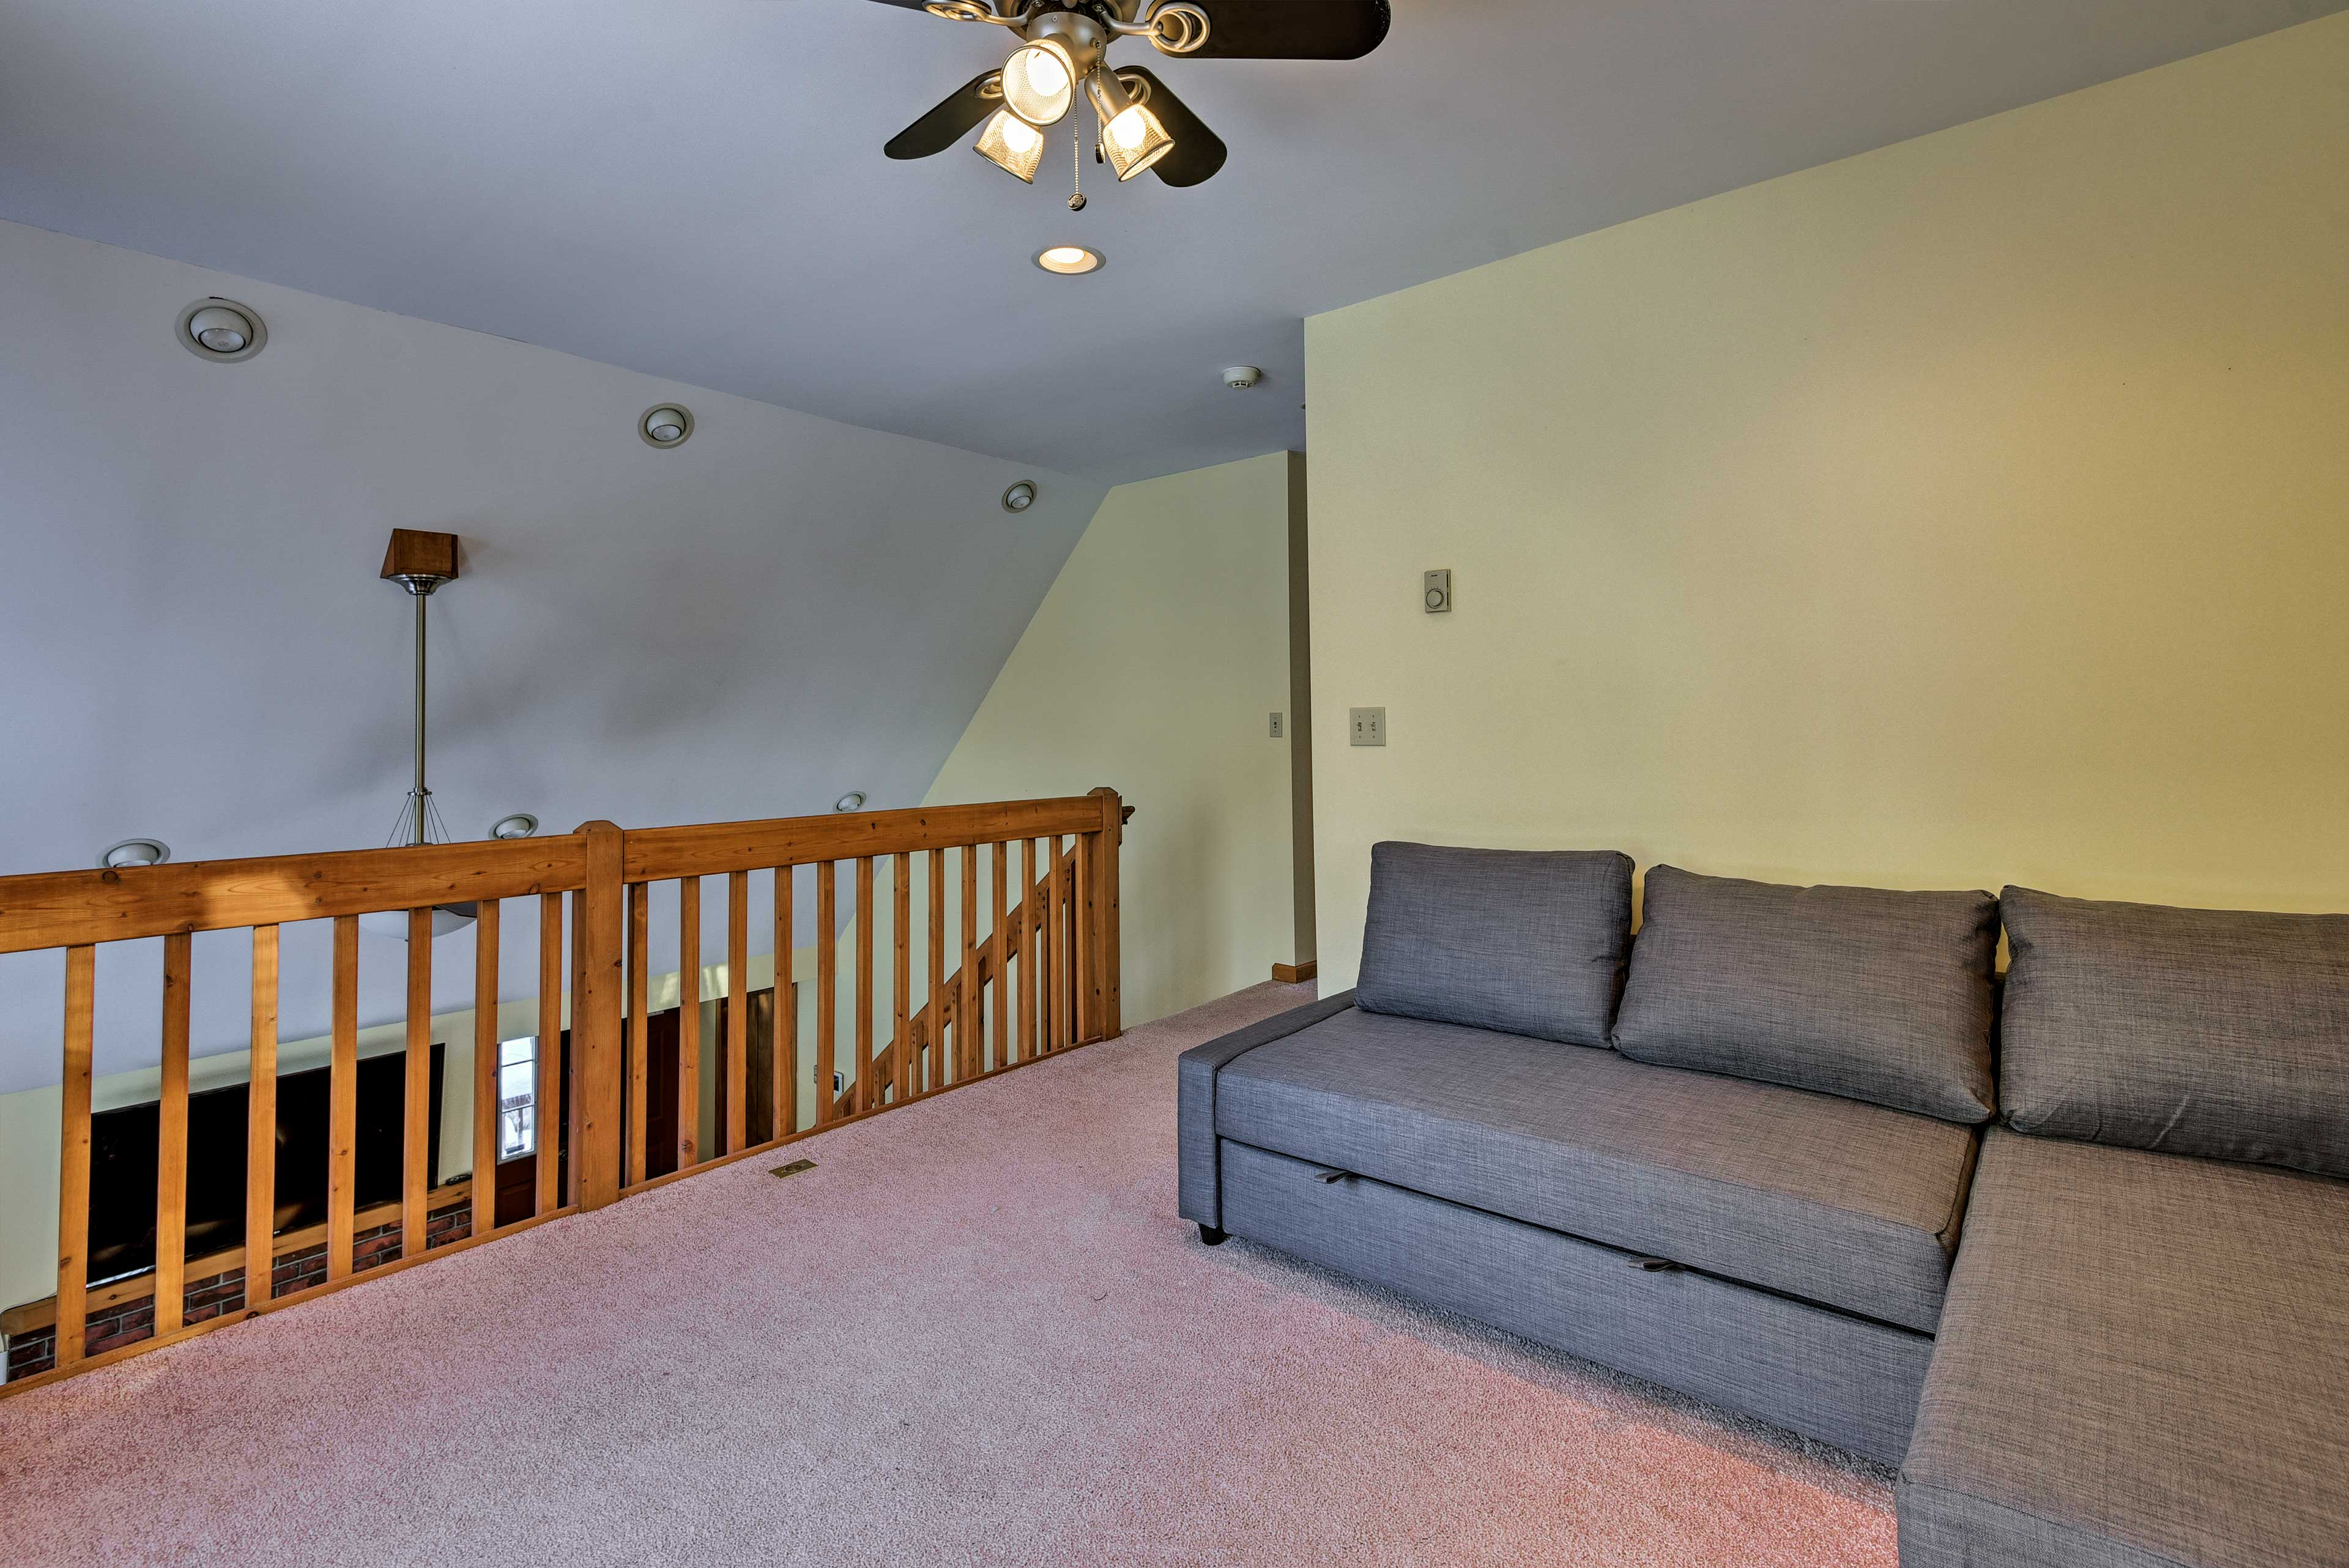 Find extra seating and sleeping space up in the loft.